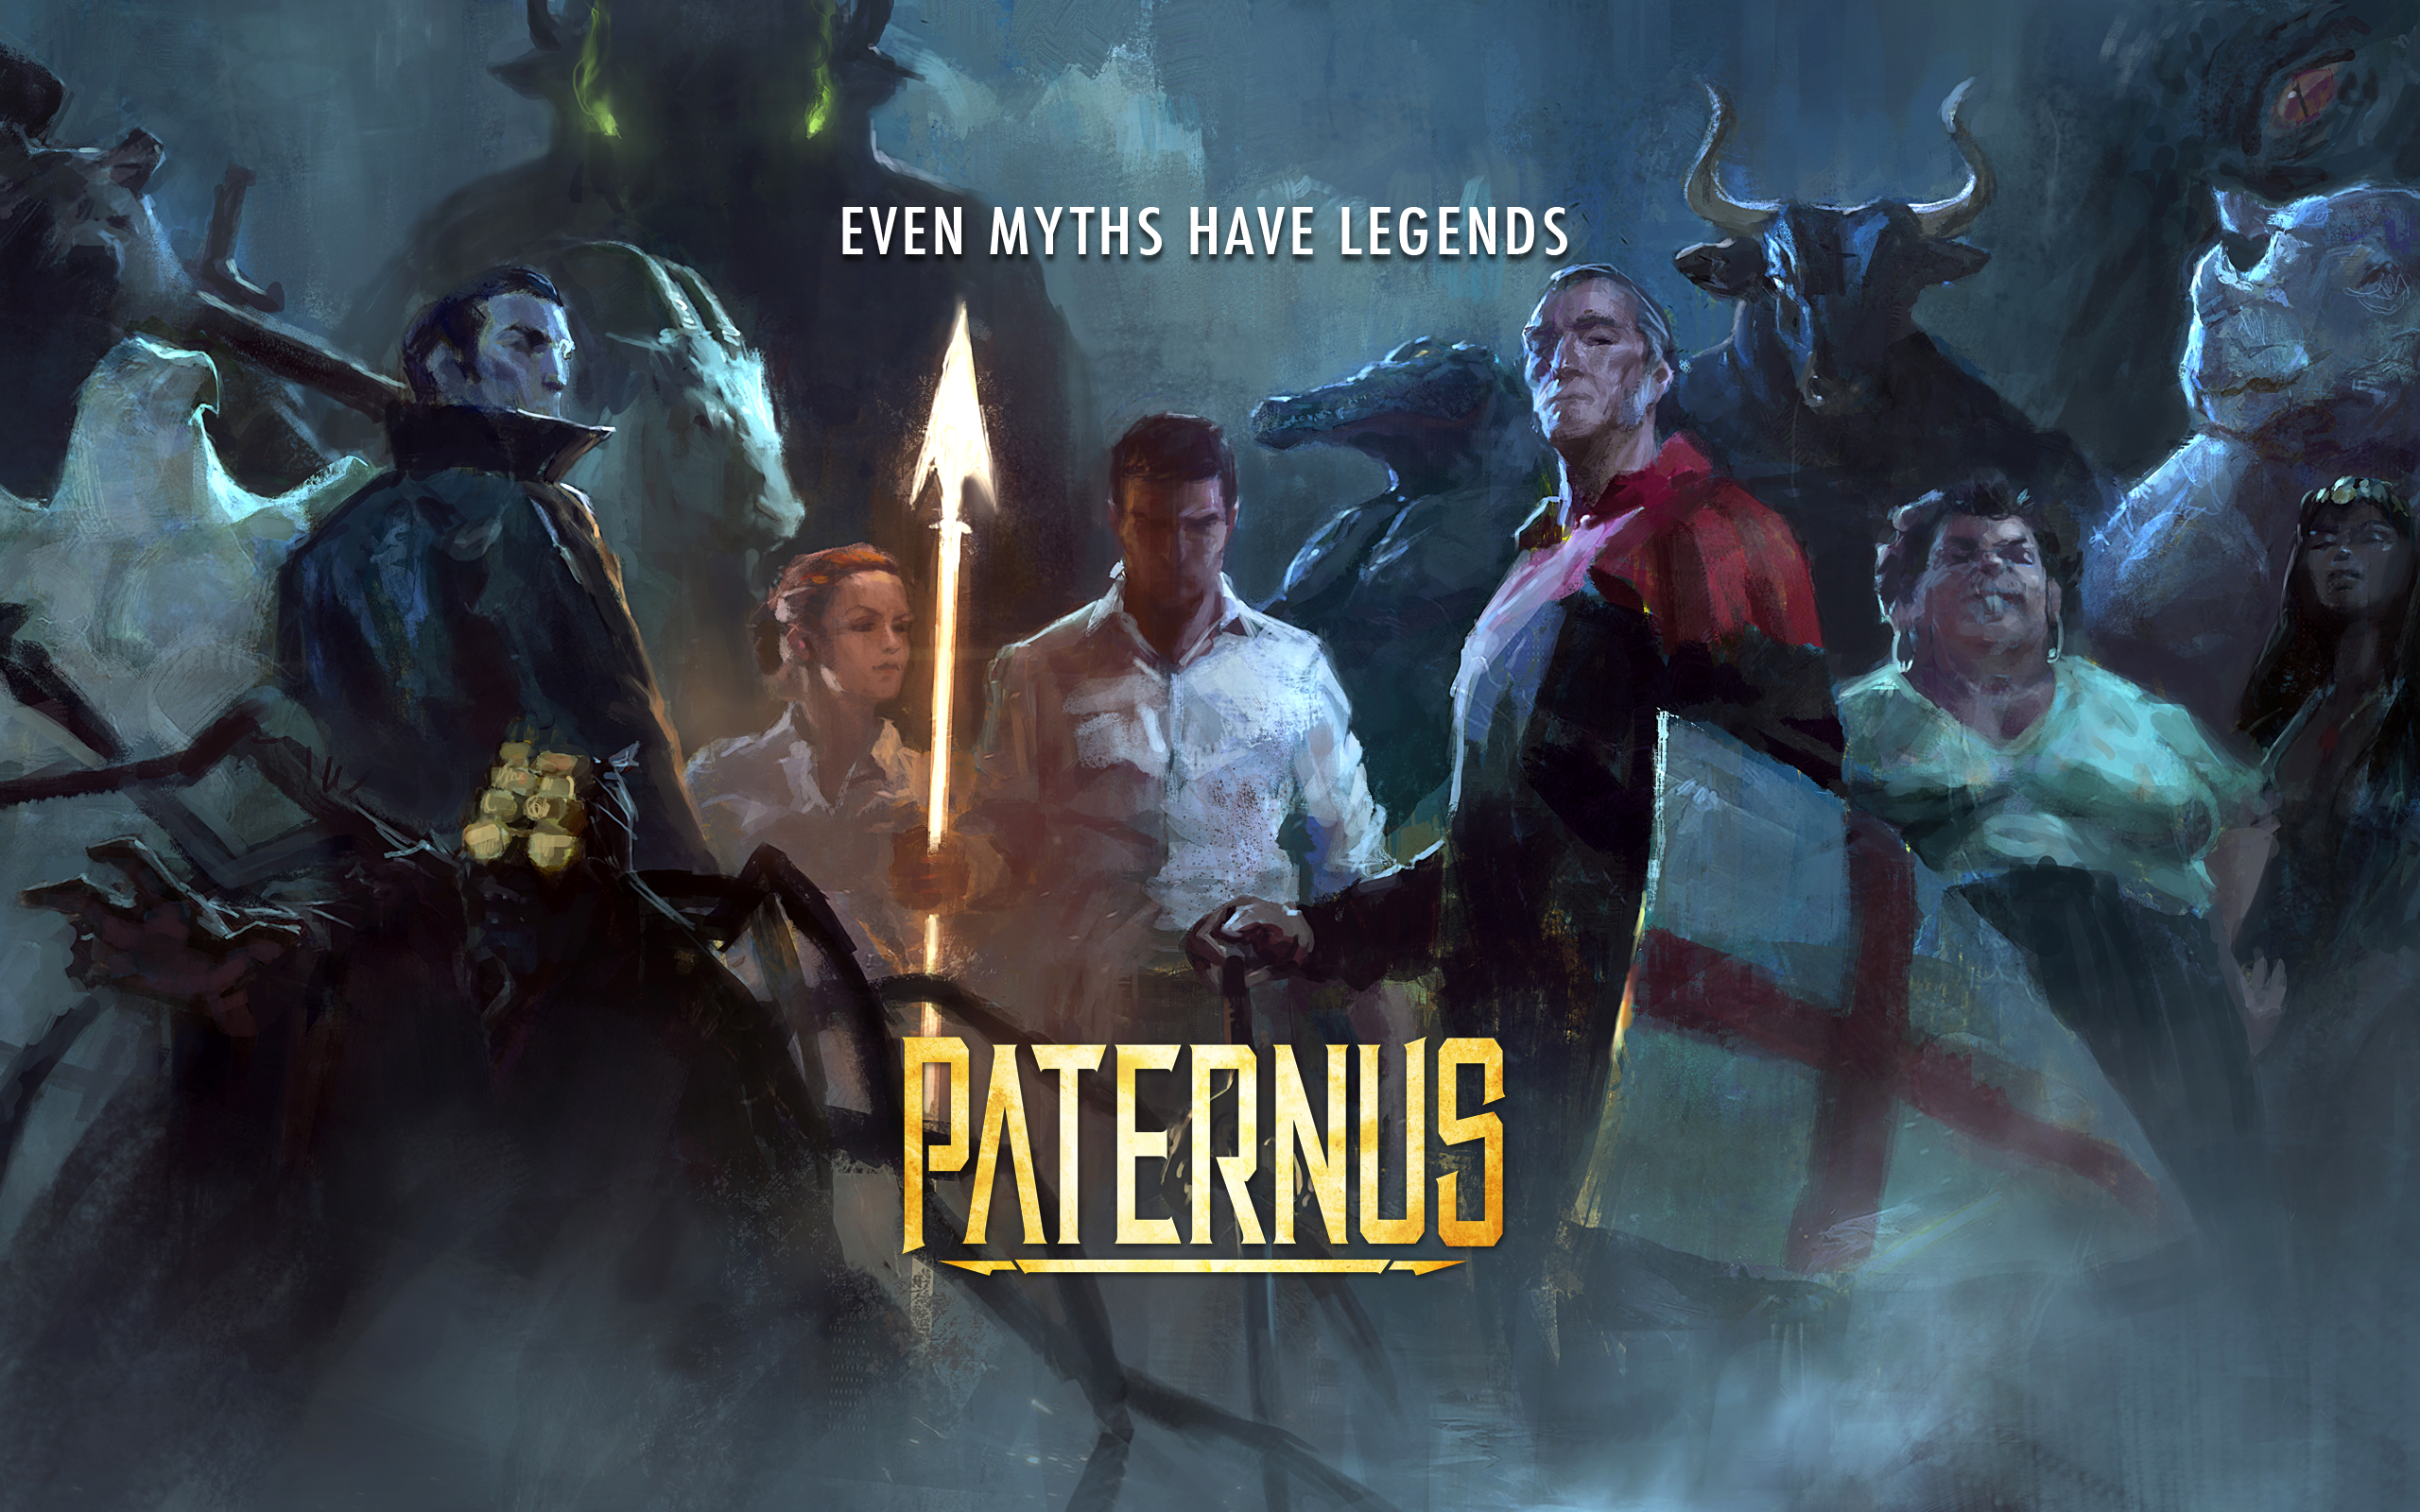 Review Blog – Paternus by Dyrk Ashton